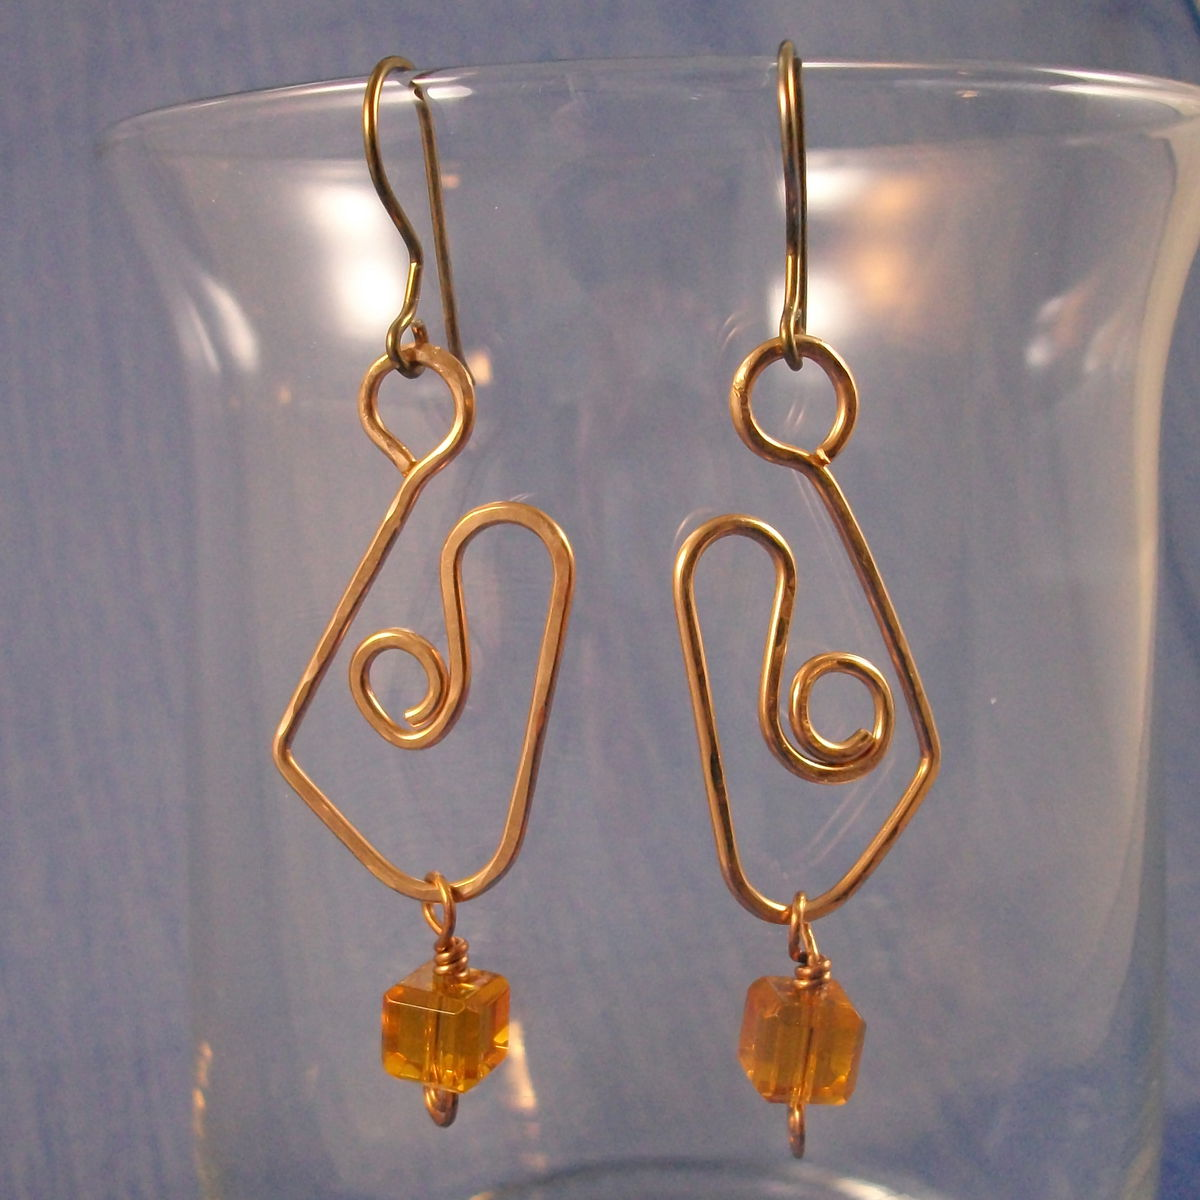 Bronze Wirework Earrings with Niobium Earwires and Amber Glass Cube Accent - product image